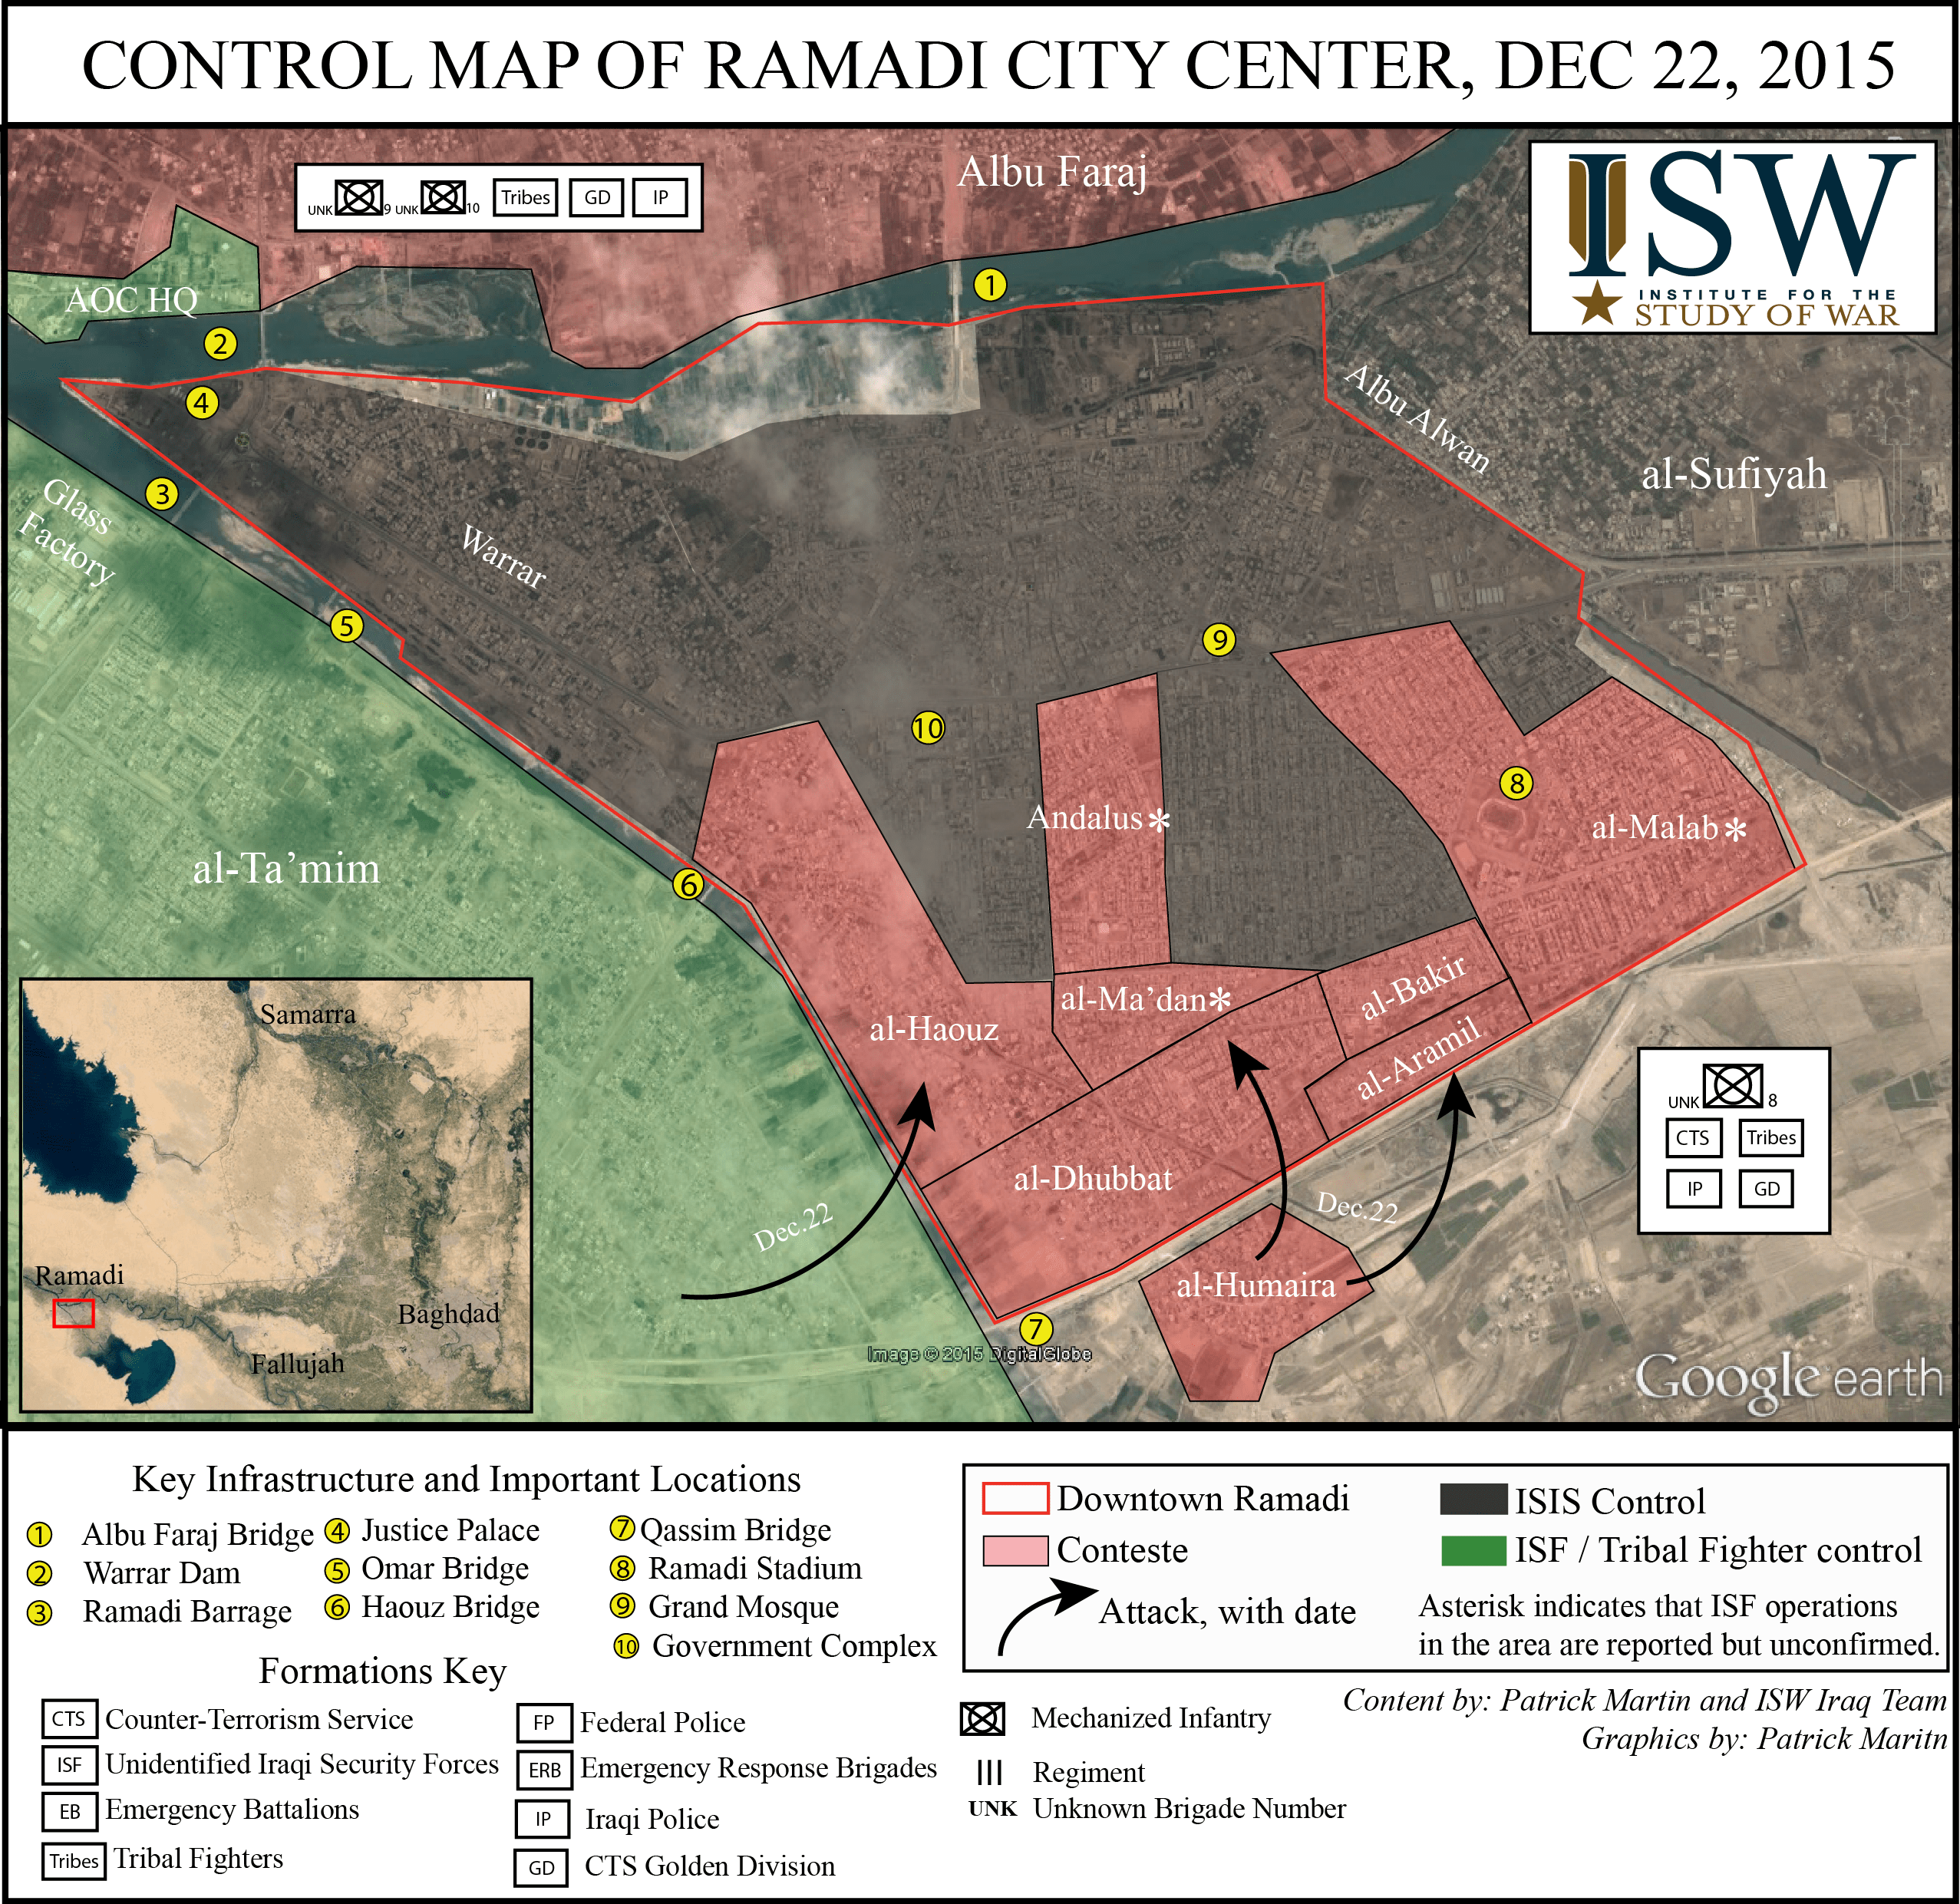 Ramadi Control Map  Nov  22  2015  Central Ramadi    Institute for     The ISF began a major operation to penetrate central Ramadi on December 22   2015  An element lead by the Counter Terrorism Service  CTS  entered Ramadi  from